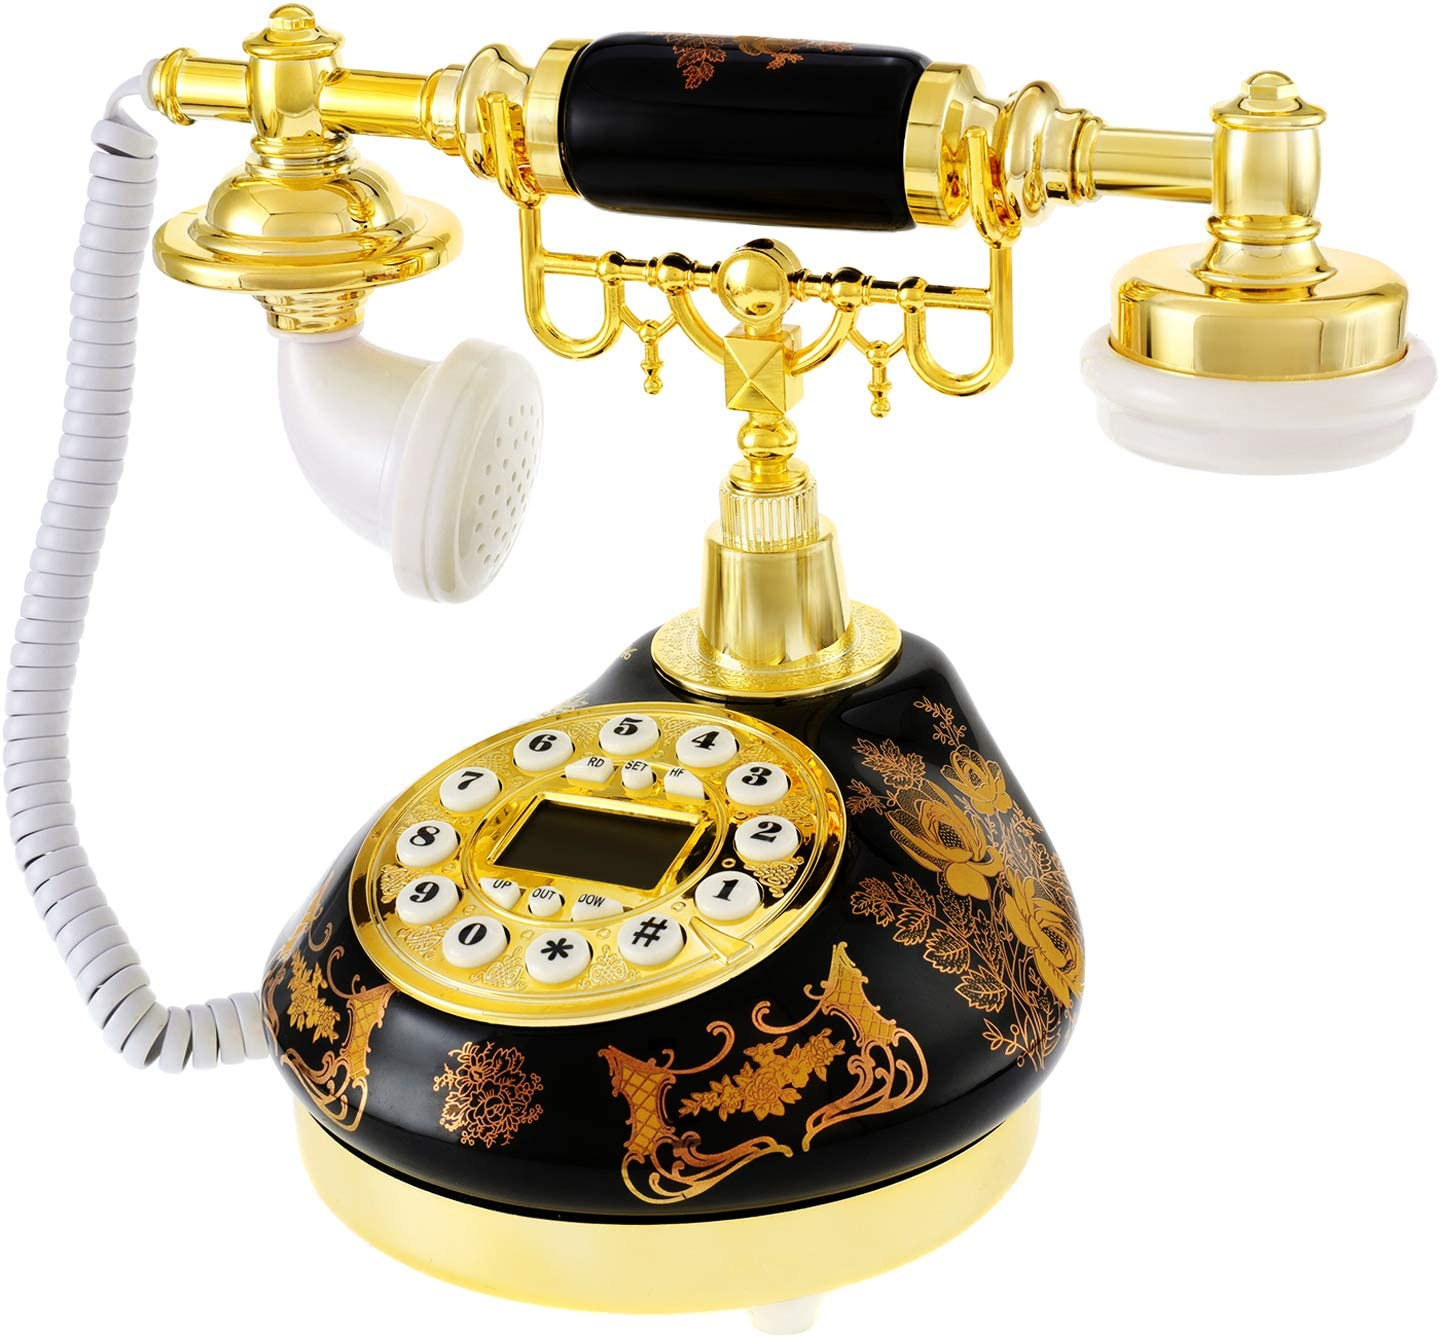 Dyna-Living Retro Vintage Phone Antique Telephone Landline Old Fashioned Telephones with Push Button LCD Display Classic Ceramic Retro Desktop Phone for Home Decor